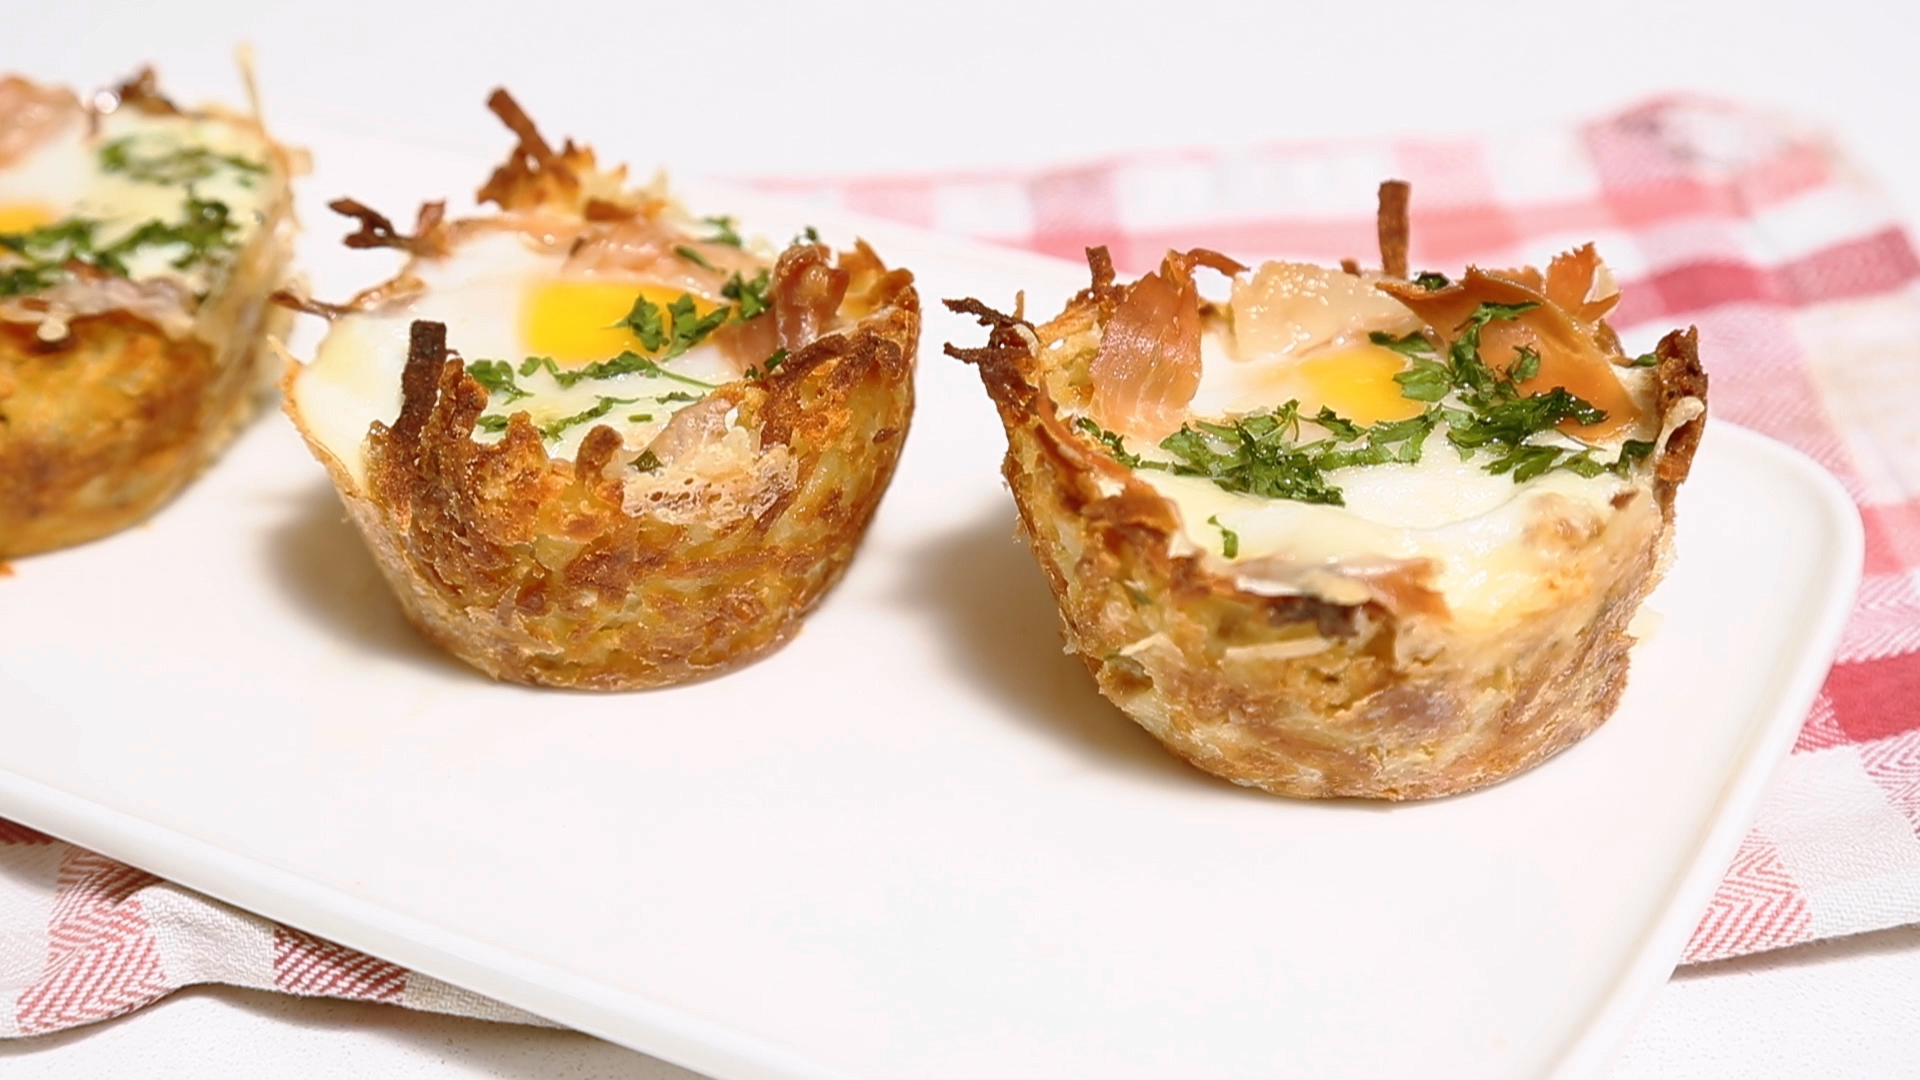 How to Make Hash Brown Egg Nests